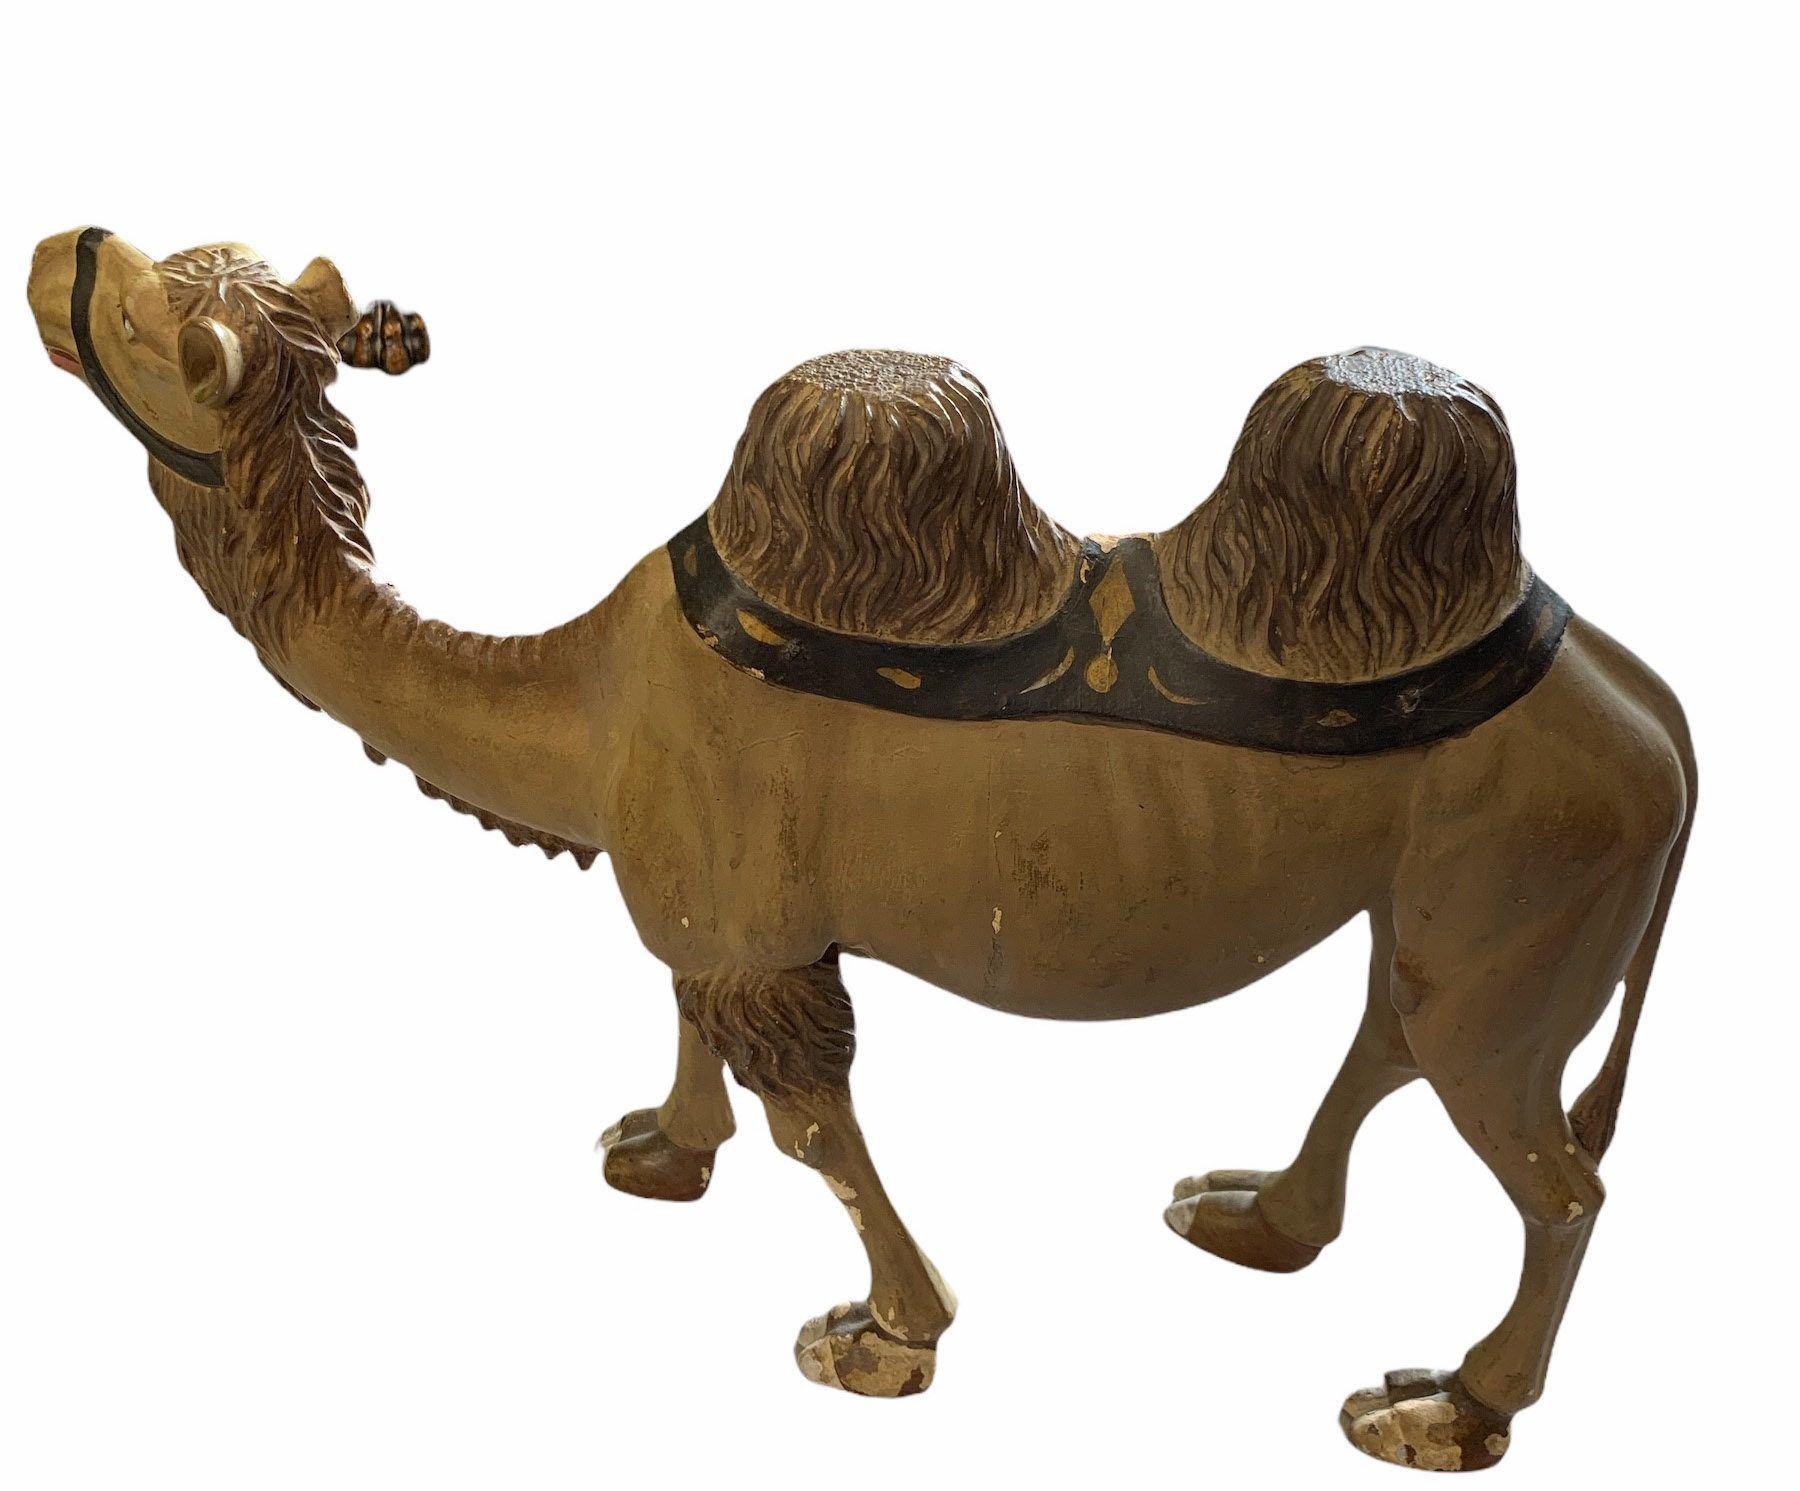 AN EARLY 20TH CENTURY CARVED WOOD AND PAINTED HUMPBACK CAMEL. (h 41cm x w 56cm) - Image 3 of 3